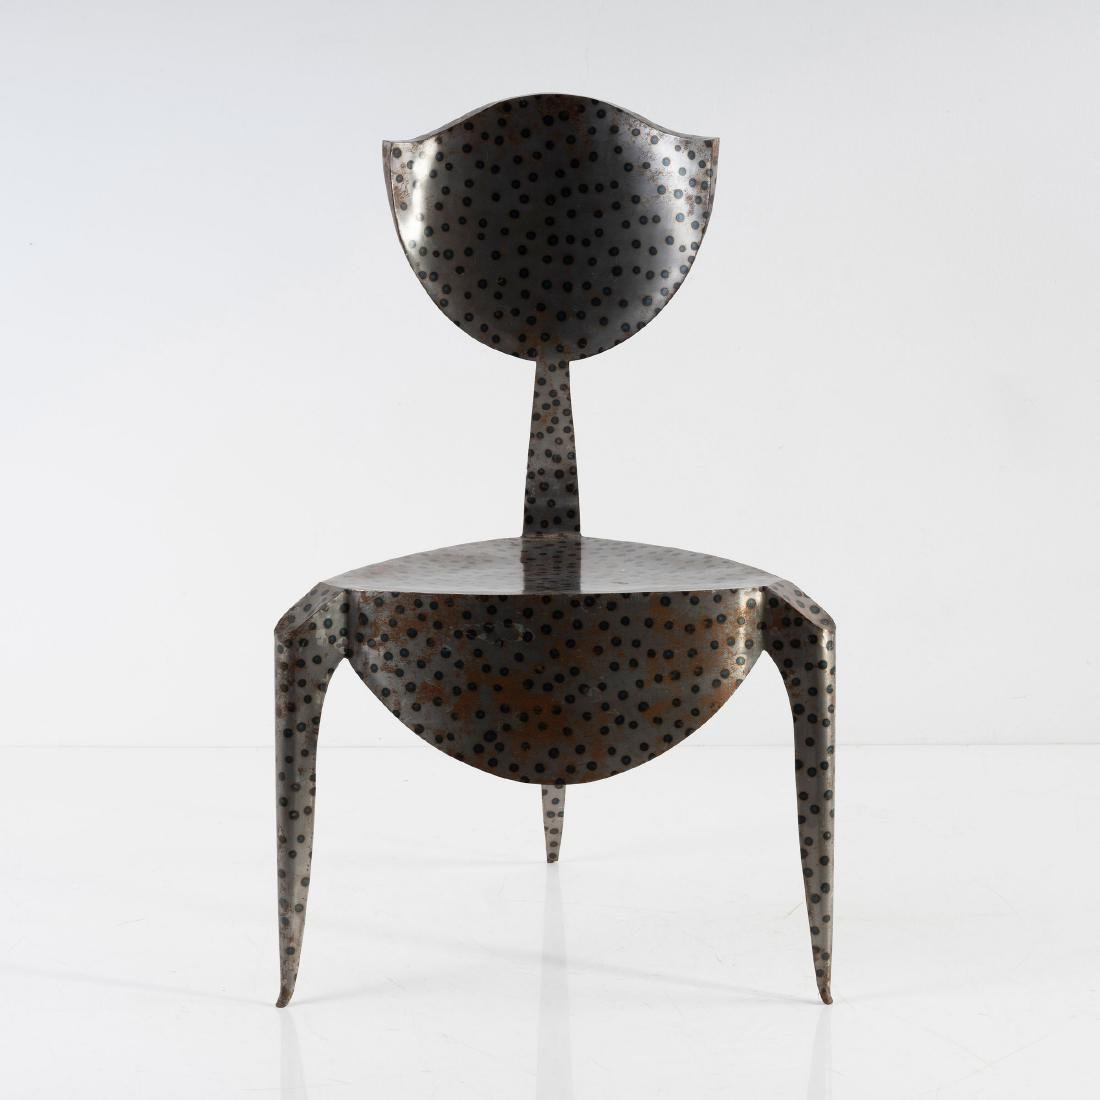 'Paris chair', 1988 - 4